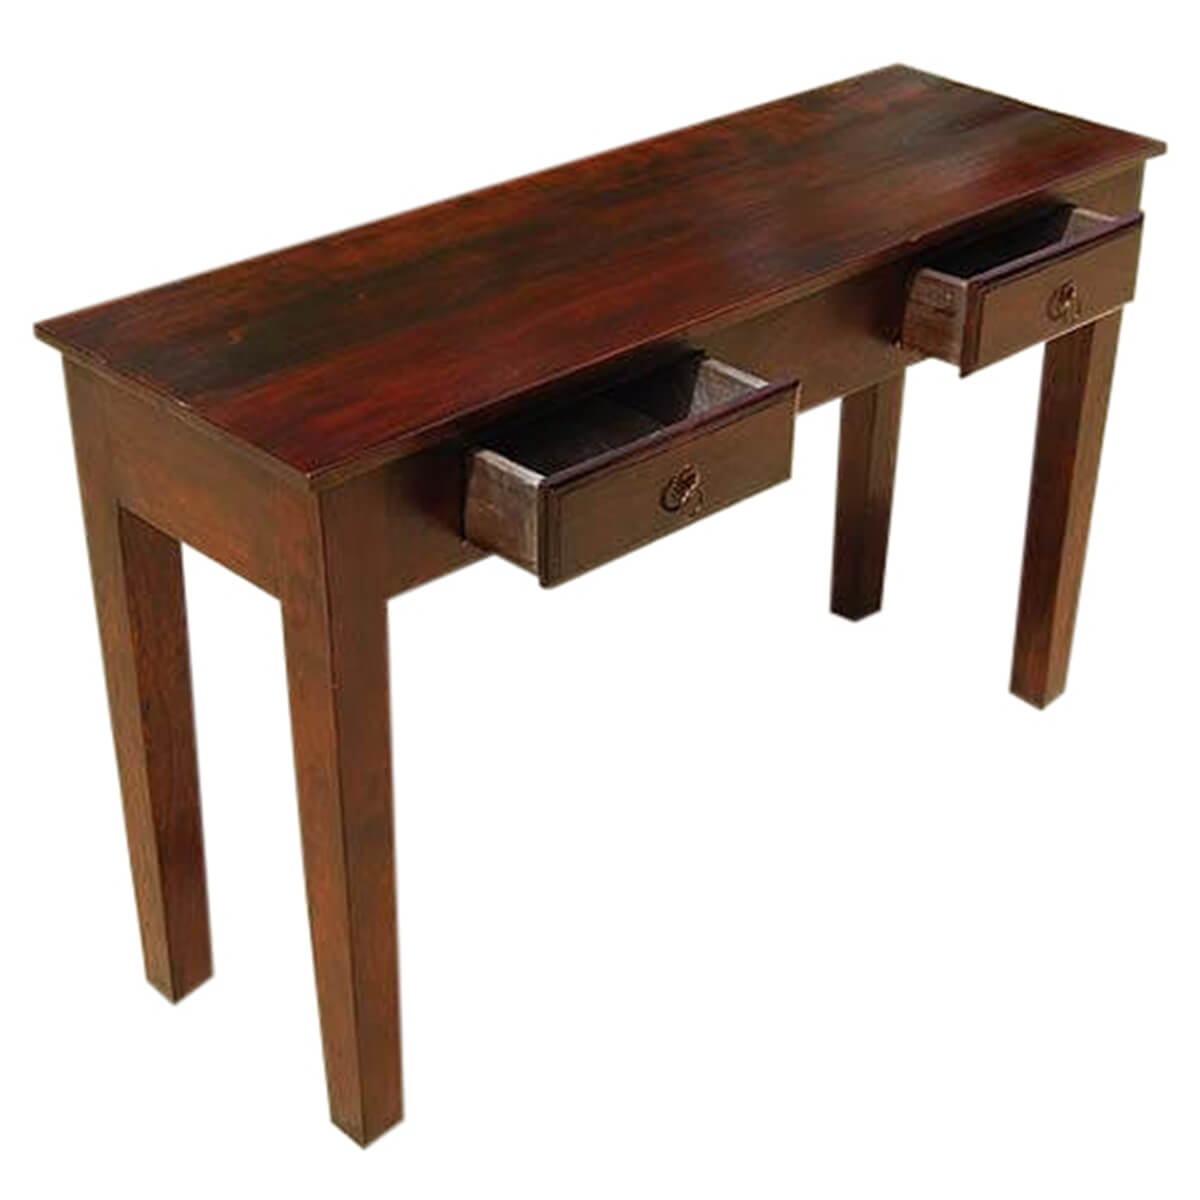 Foyer Table With Drawers : Wood storage drawers console hall entry way foyer table